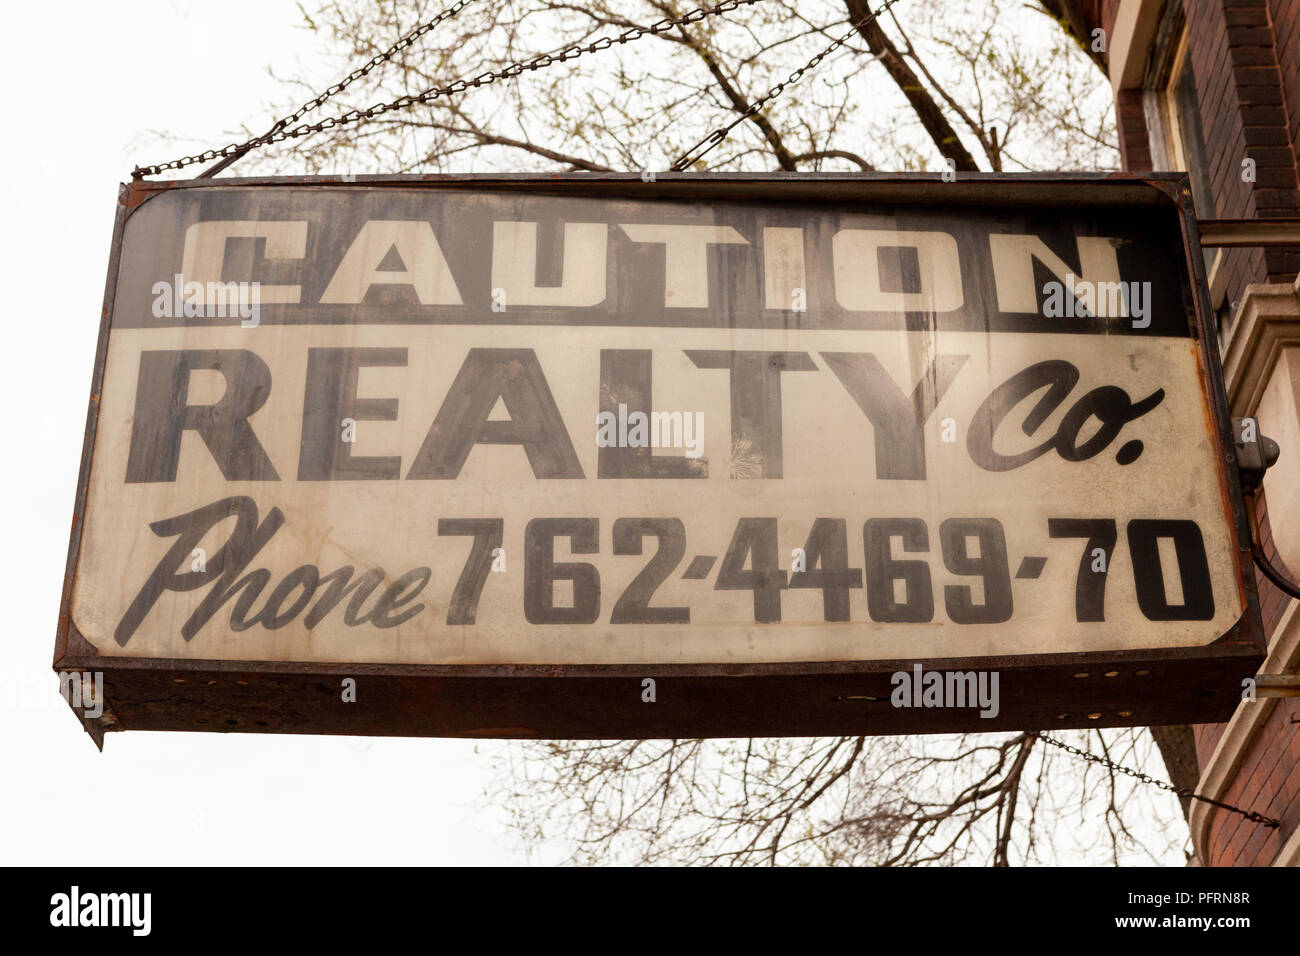 Sign attached to building on Chicago's South Side, which reads: 'Caution Realty Co. (followed by phone number).' - Stock Image